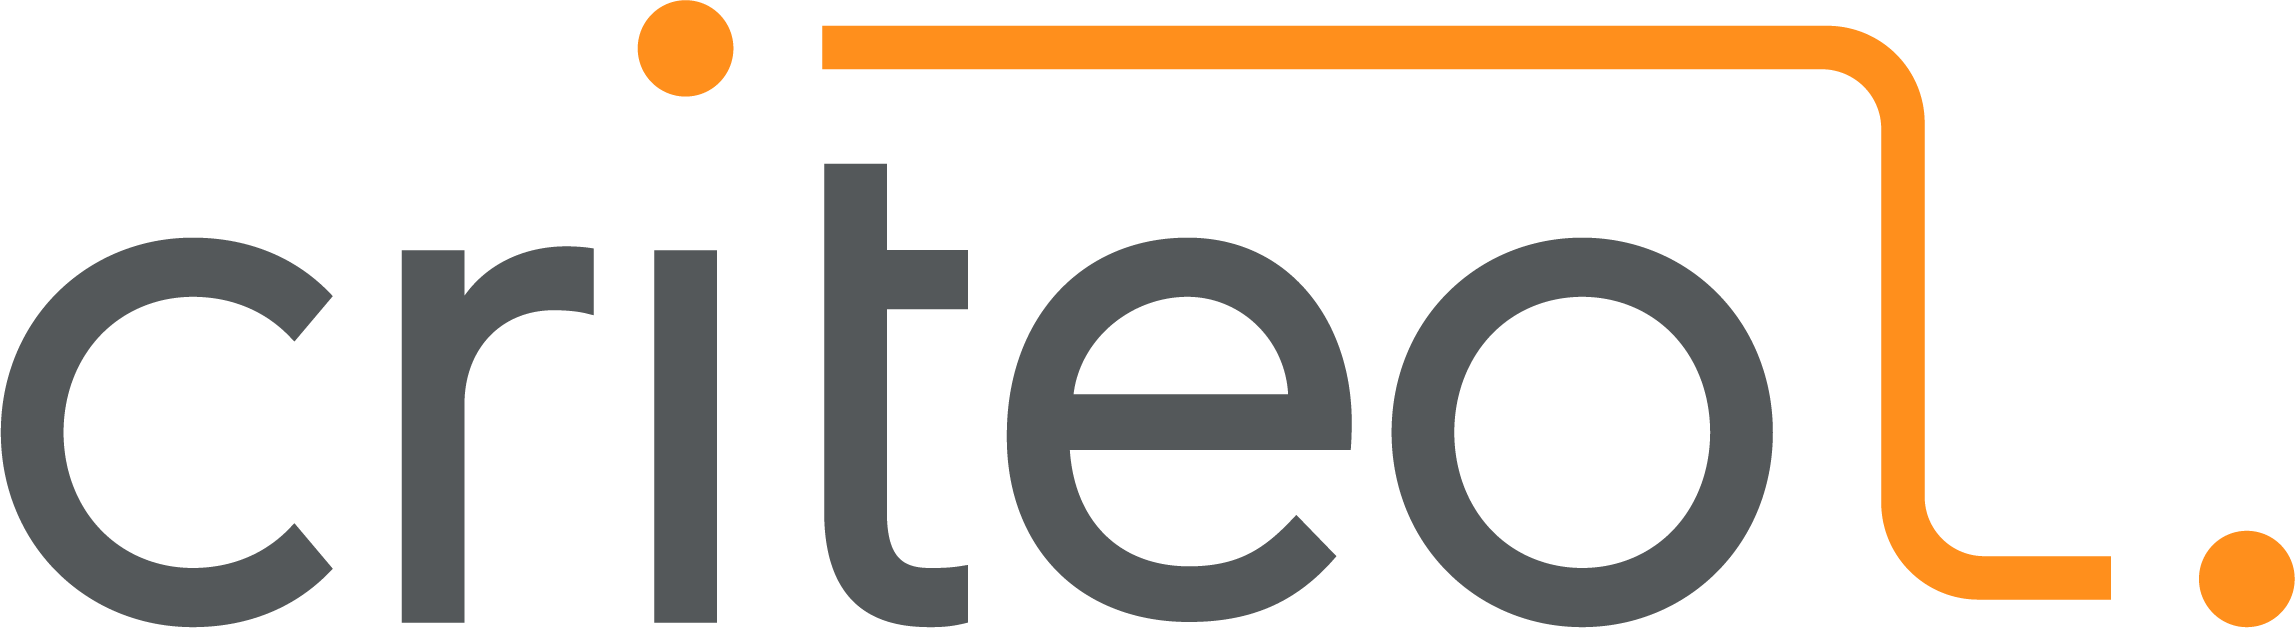 criteo-logo-october-2017.png